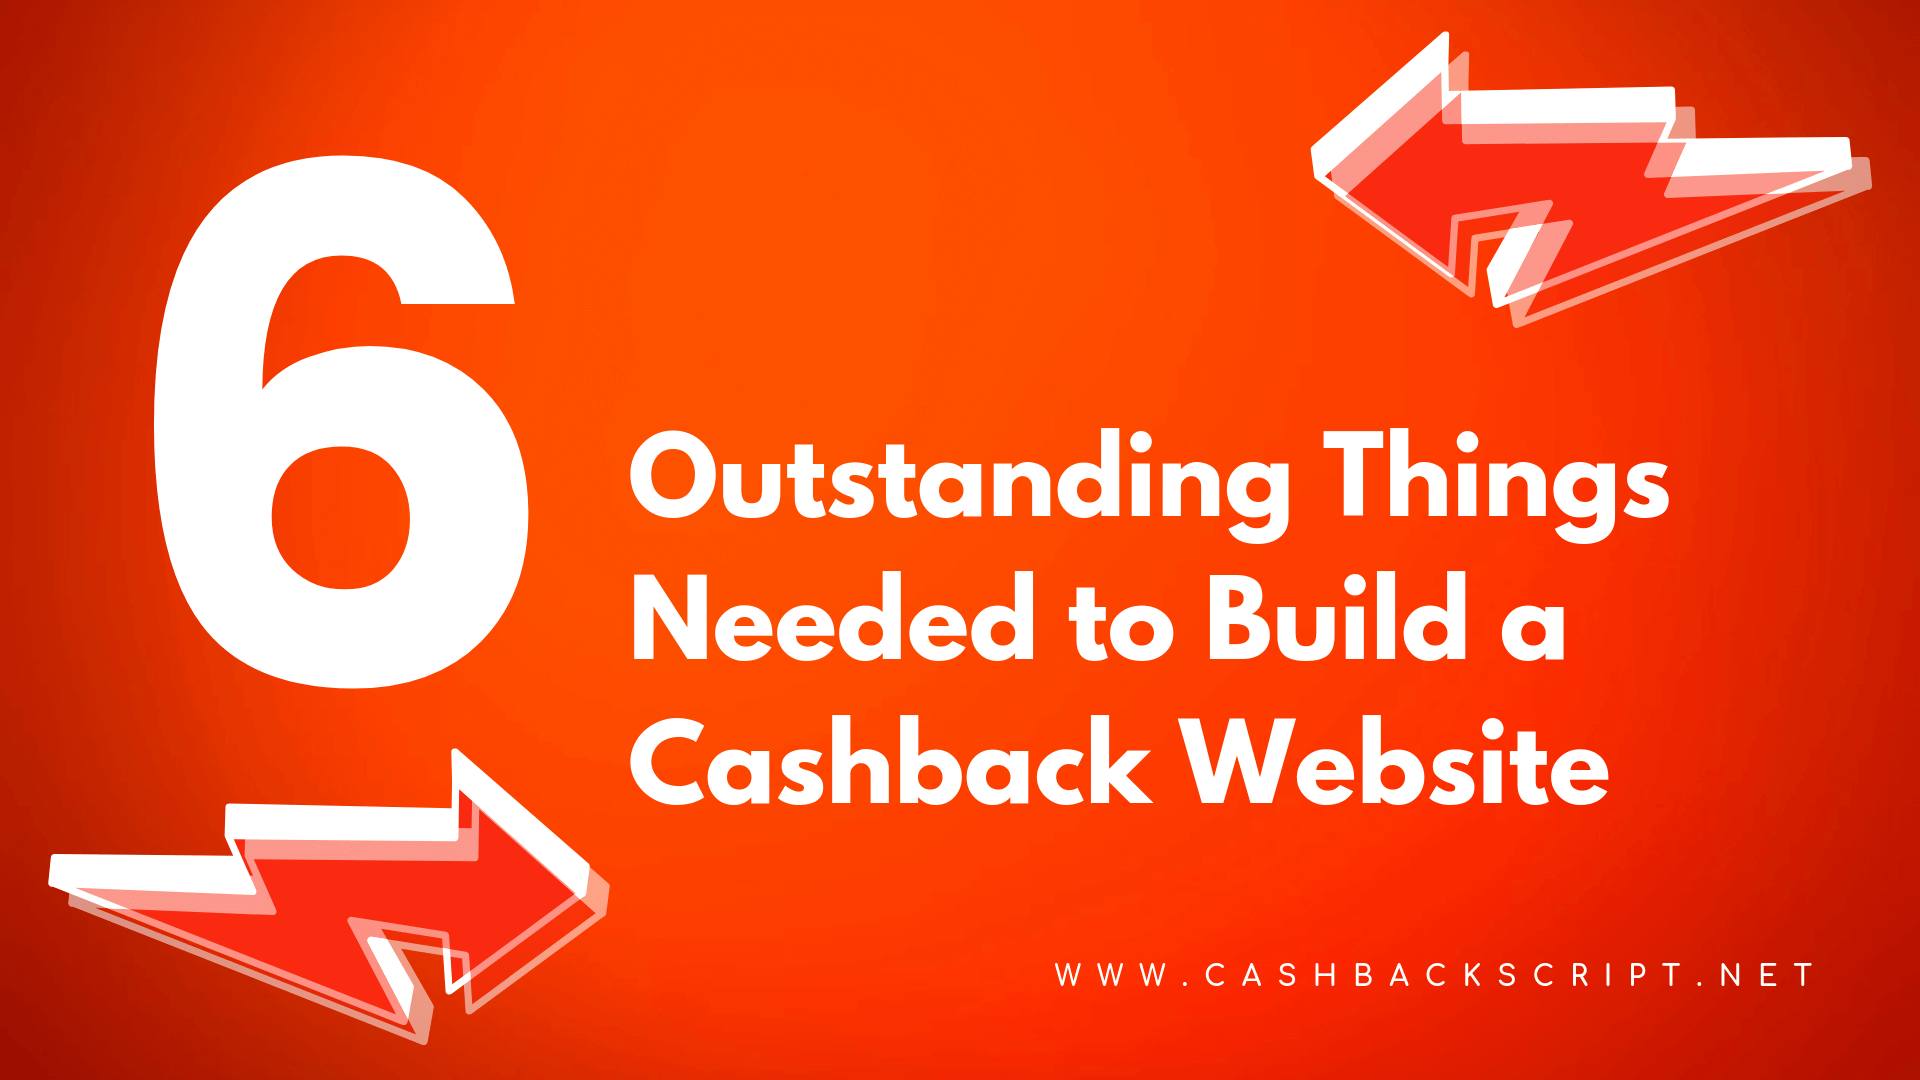 6 Outstanding Things Needed to Build a Cashback Website